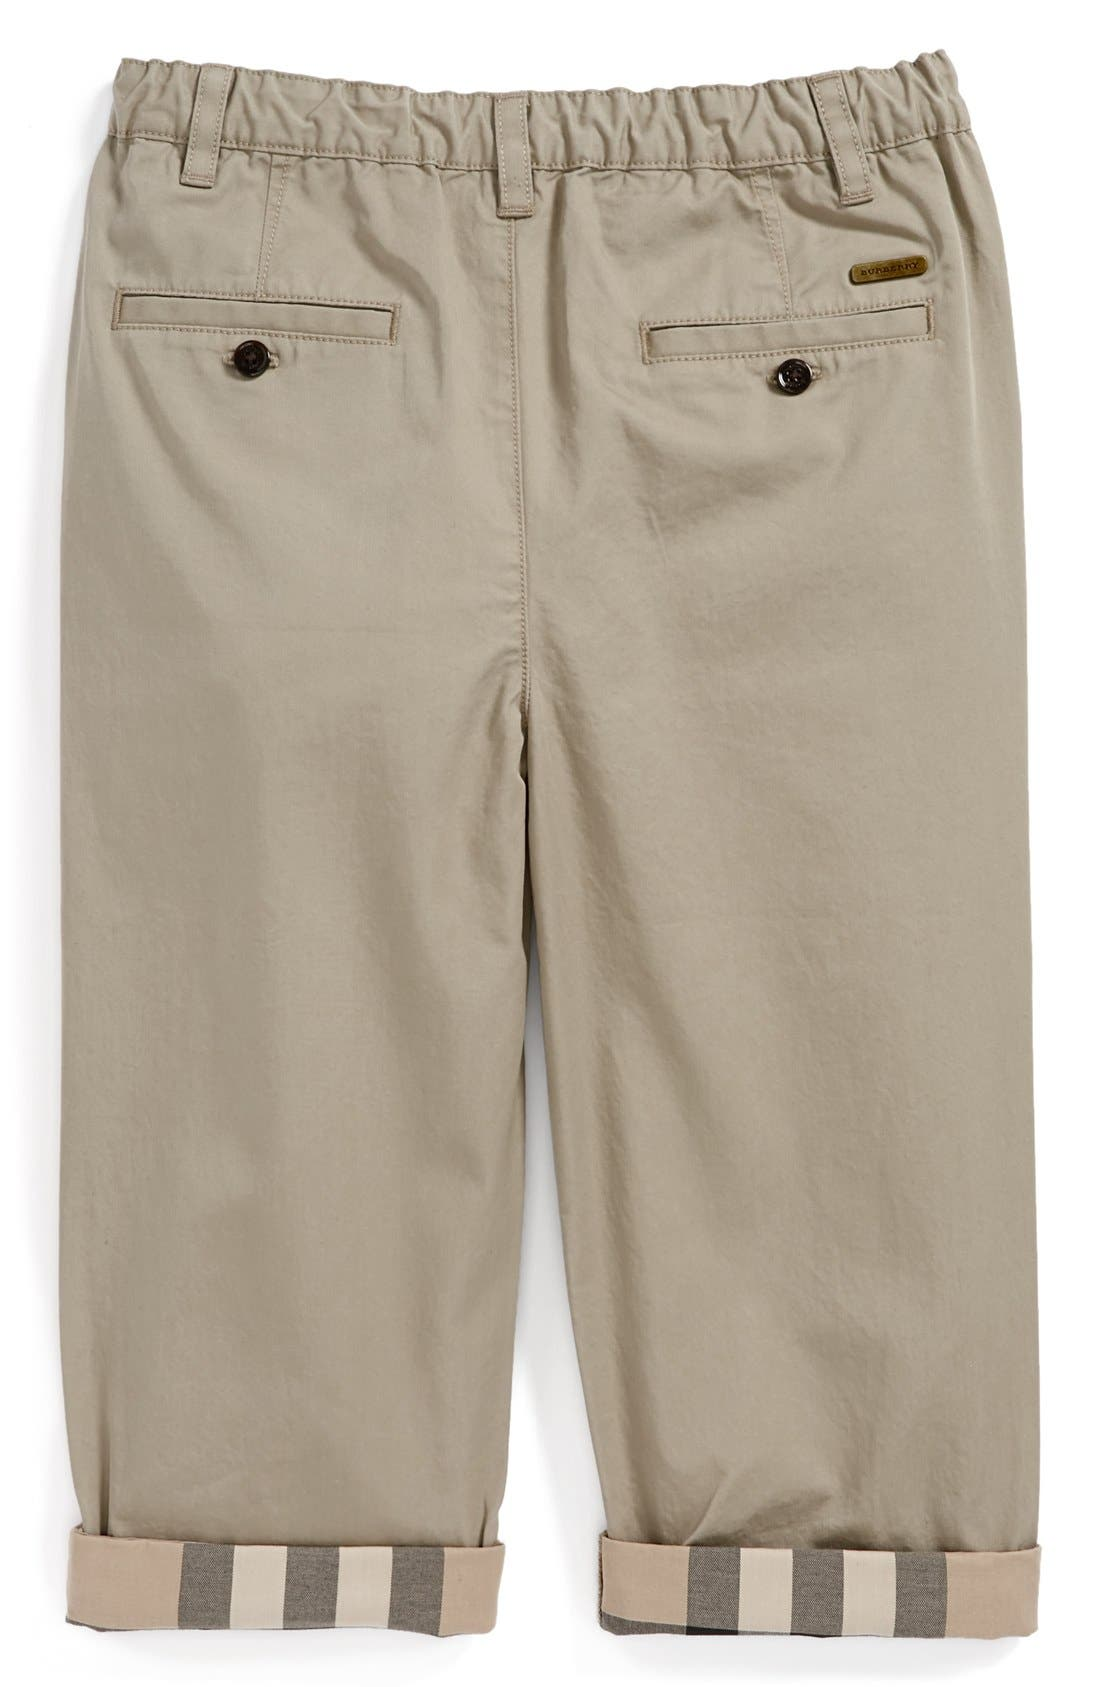 'Ricky' Check Lined Roll Cuff Pants,                             Alternate thumbnail 2, color,                             252